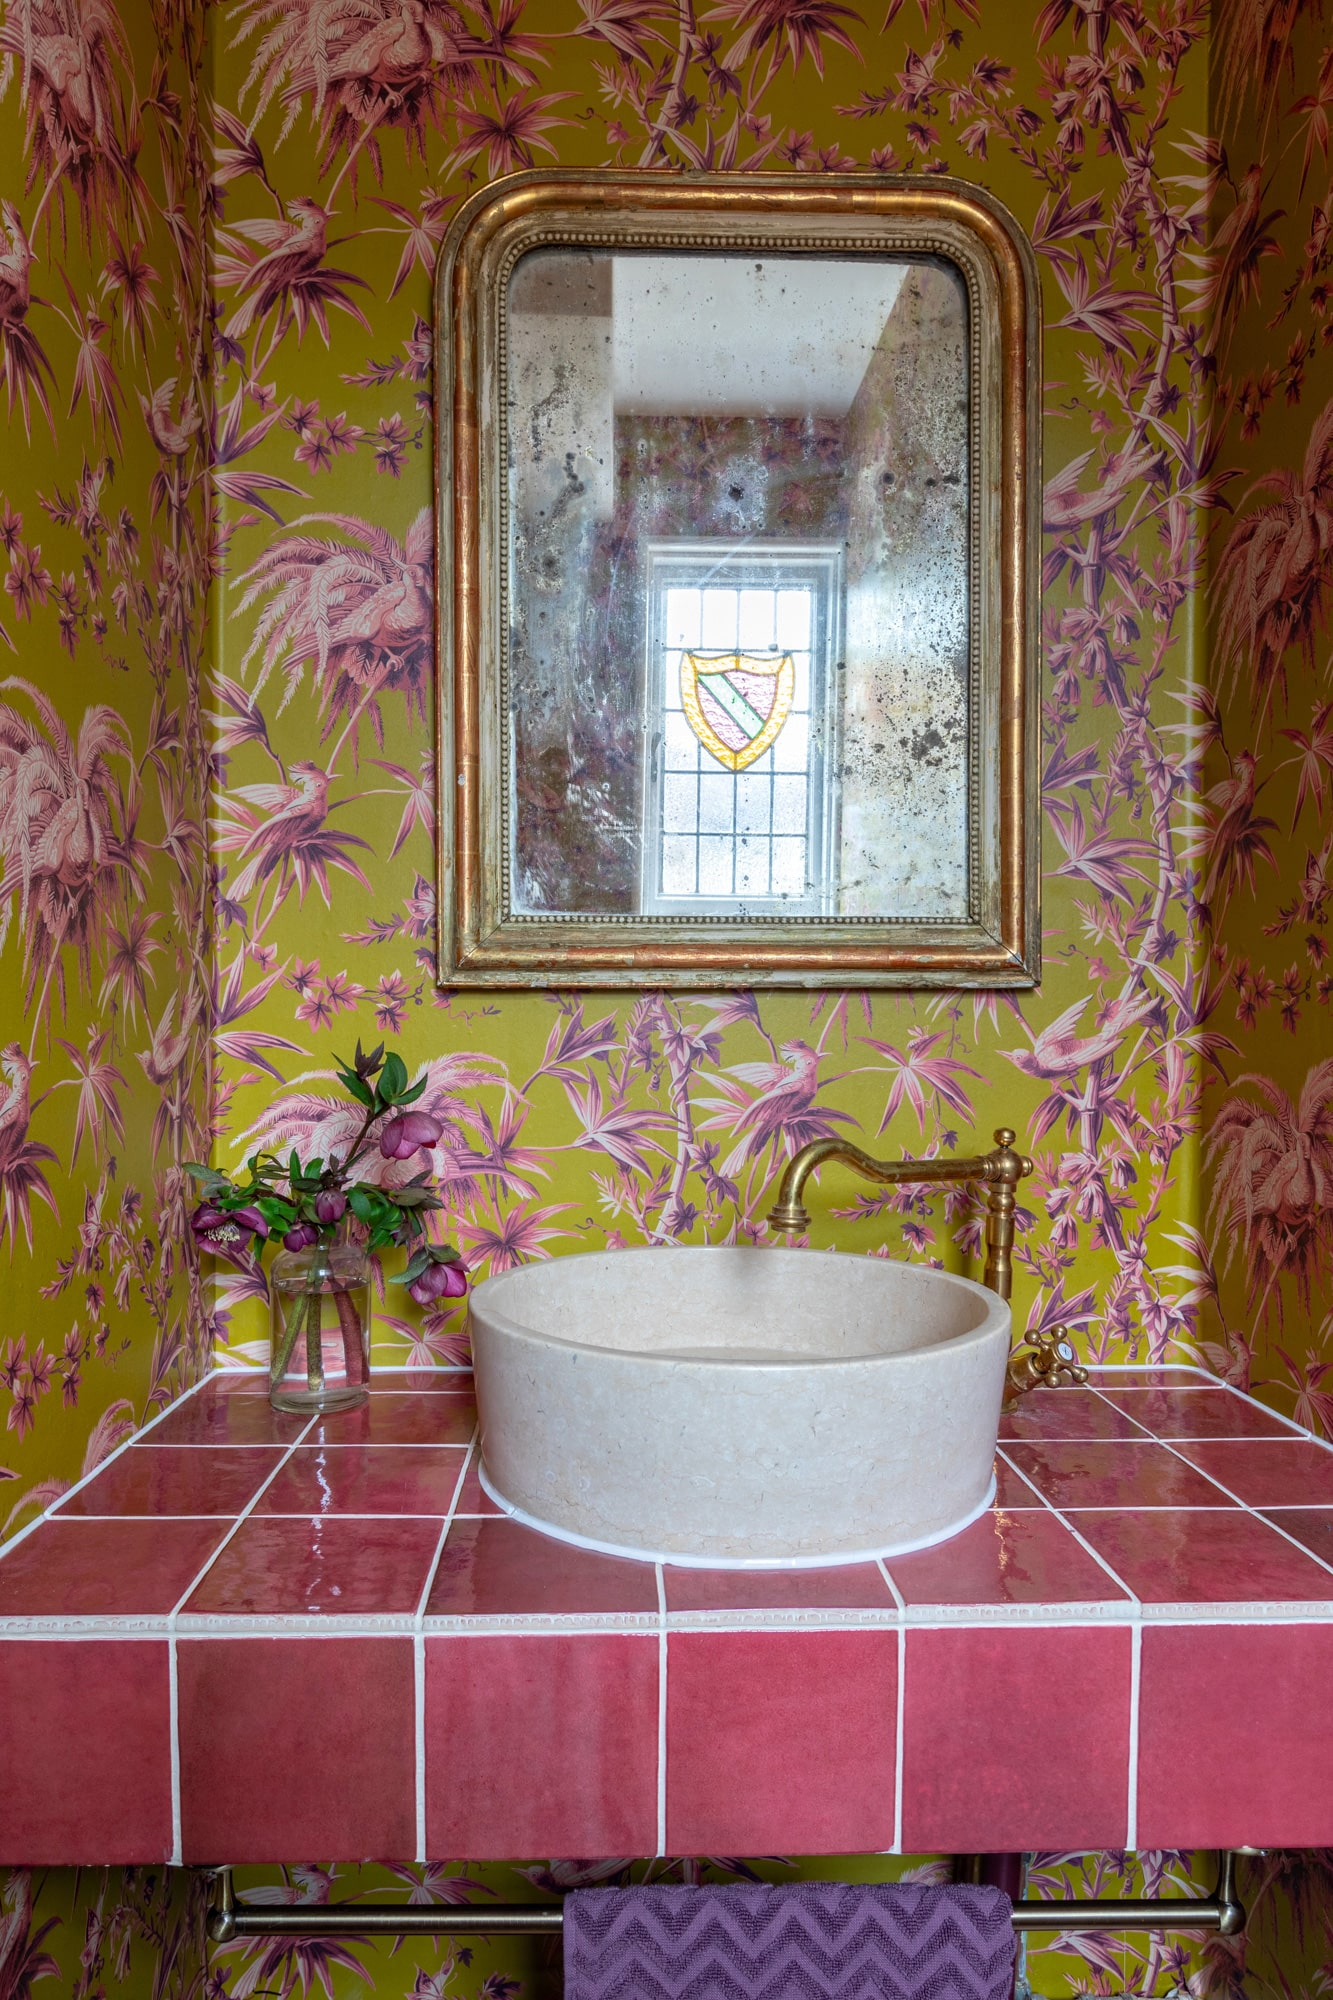 Interior shot: cloakroom with colourful floral wallpaper, sink with brass tap, a glass with purple flowers